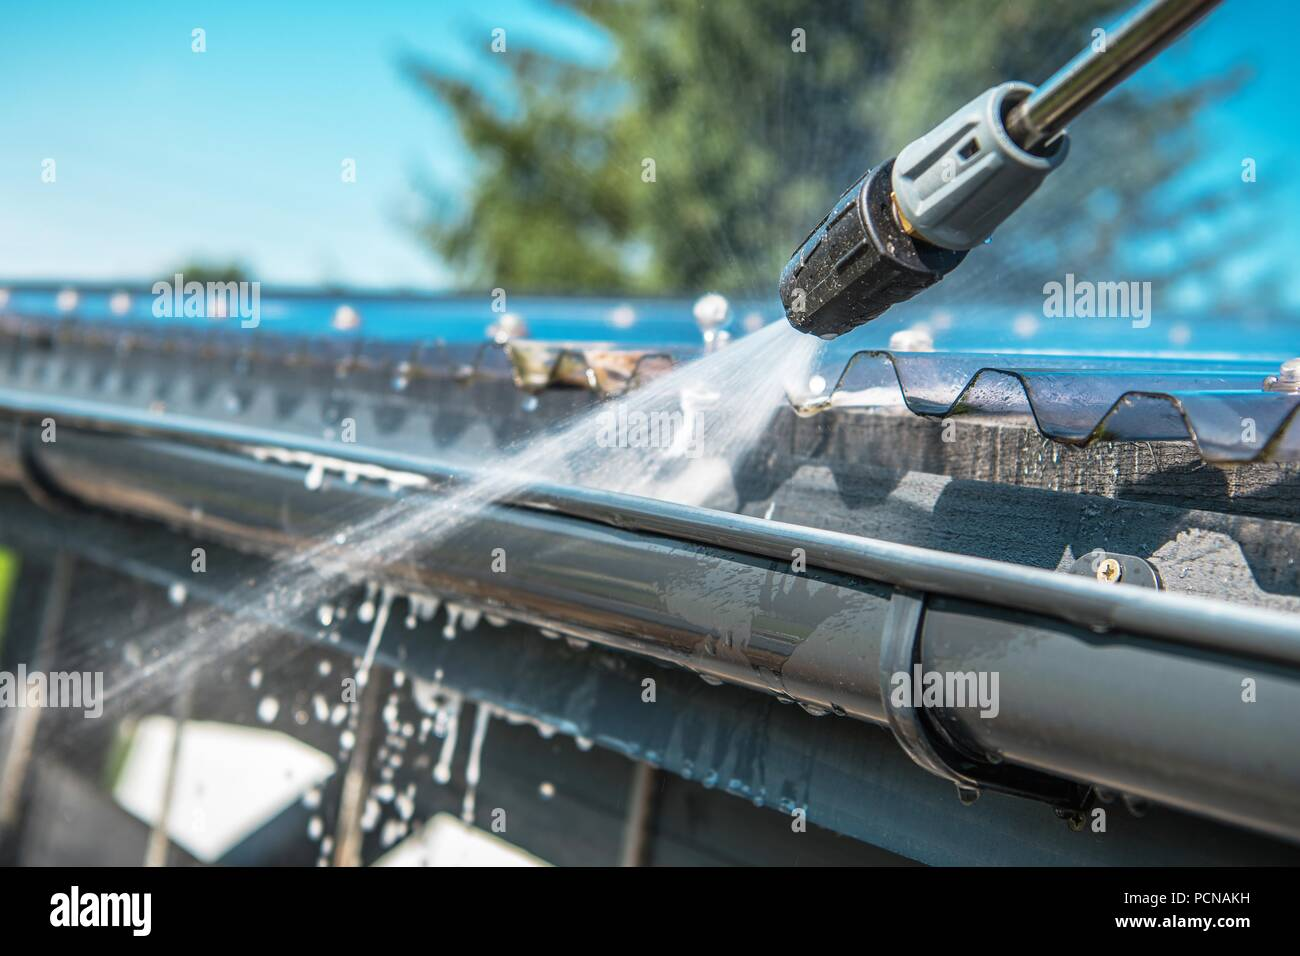 Cleaning Roof Stock Photos Amp Cleaning Roof Stock Images